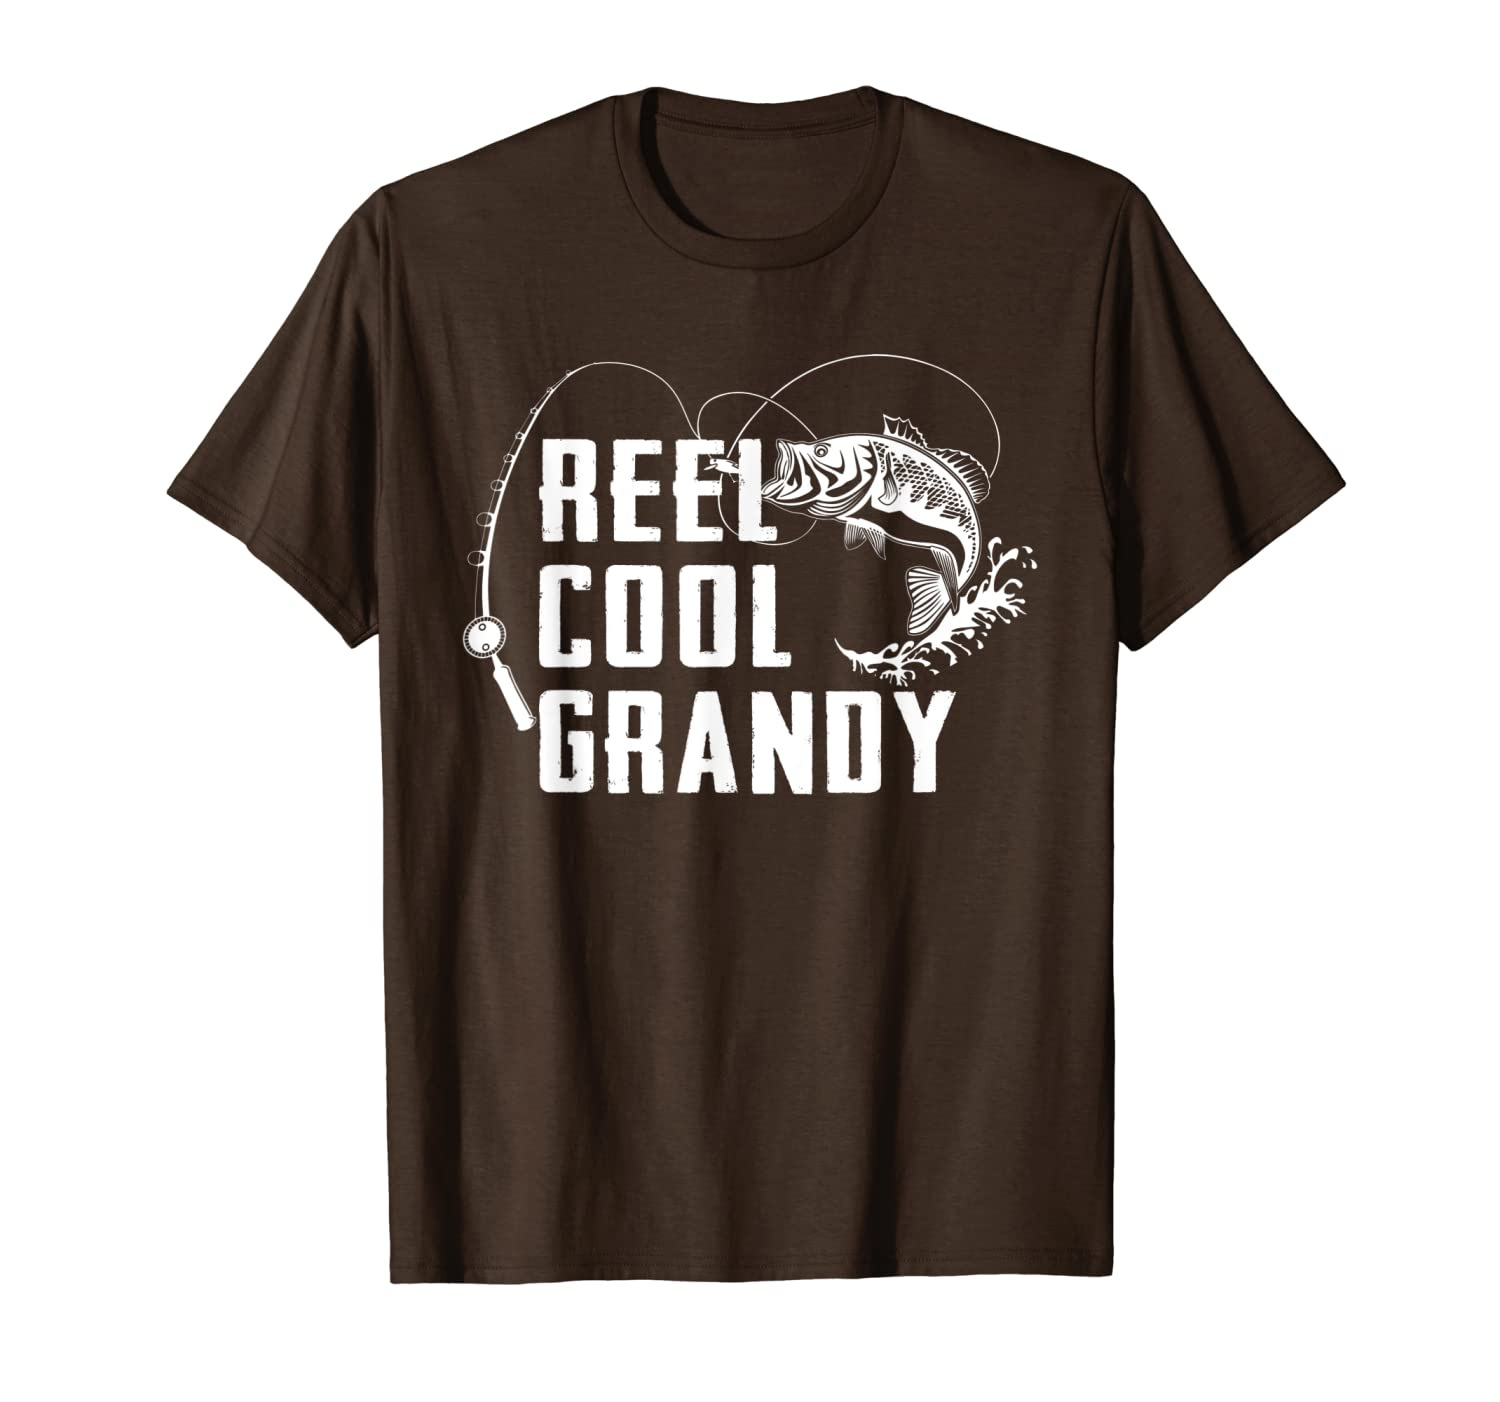 Mens Reel Cool Grandy - Fishing Gift T-Shirt For Dad Or Grandpa Unisex Tshirt